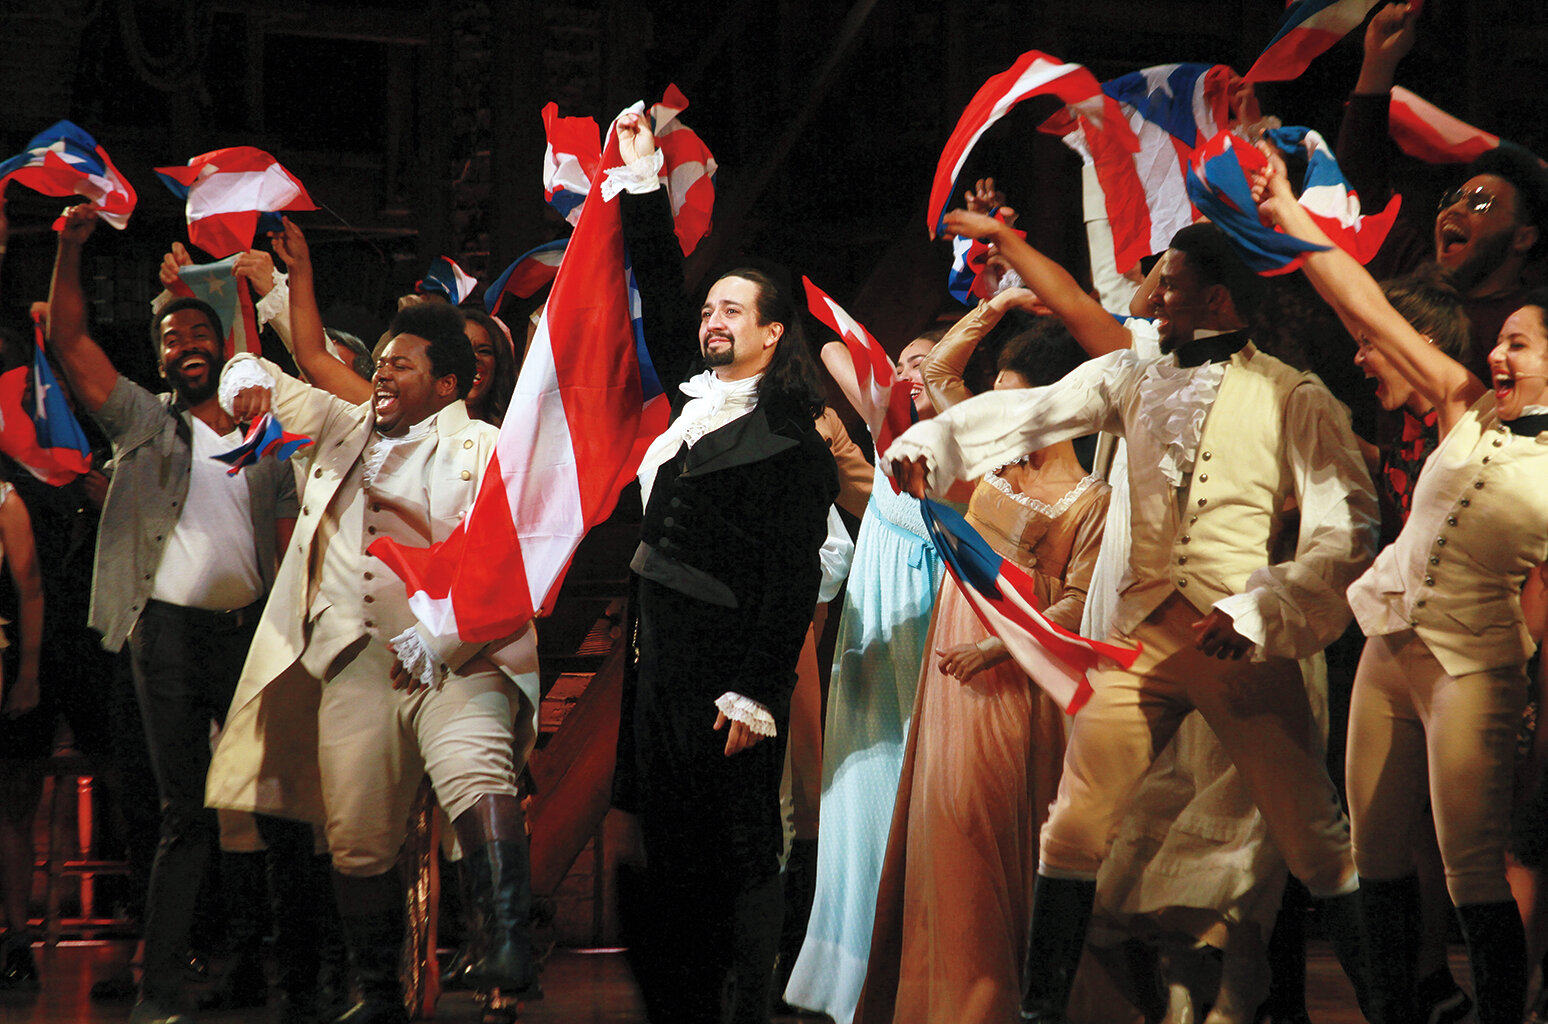 American Express earned a silver prize for its integrated campaign Hamilton Puerto Rico (music marketing), which launched a special Hamilton run in San Juan starring Lin-Manuel Miranda (pictured during the show's final night on Jan. 27).